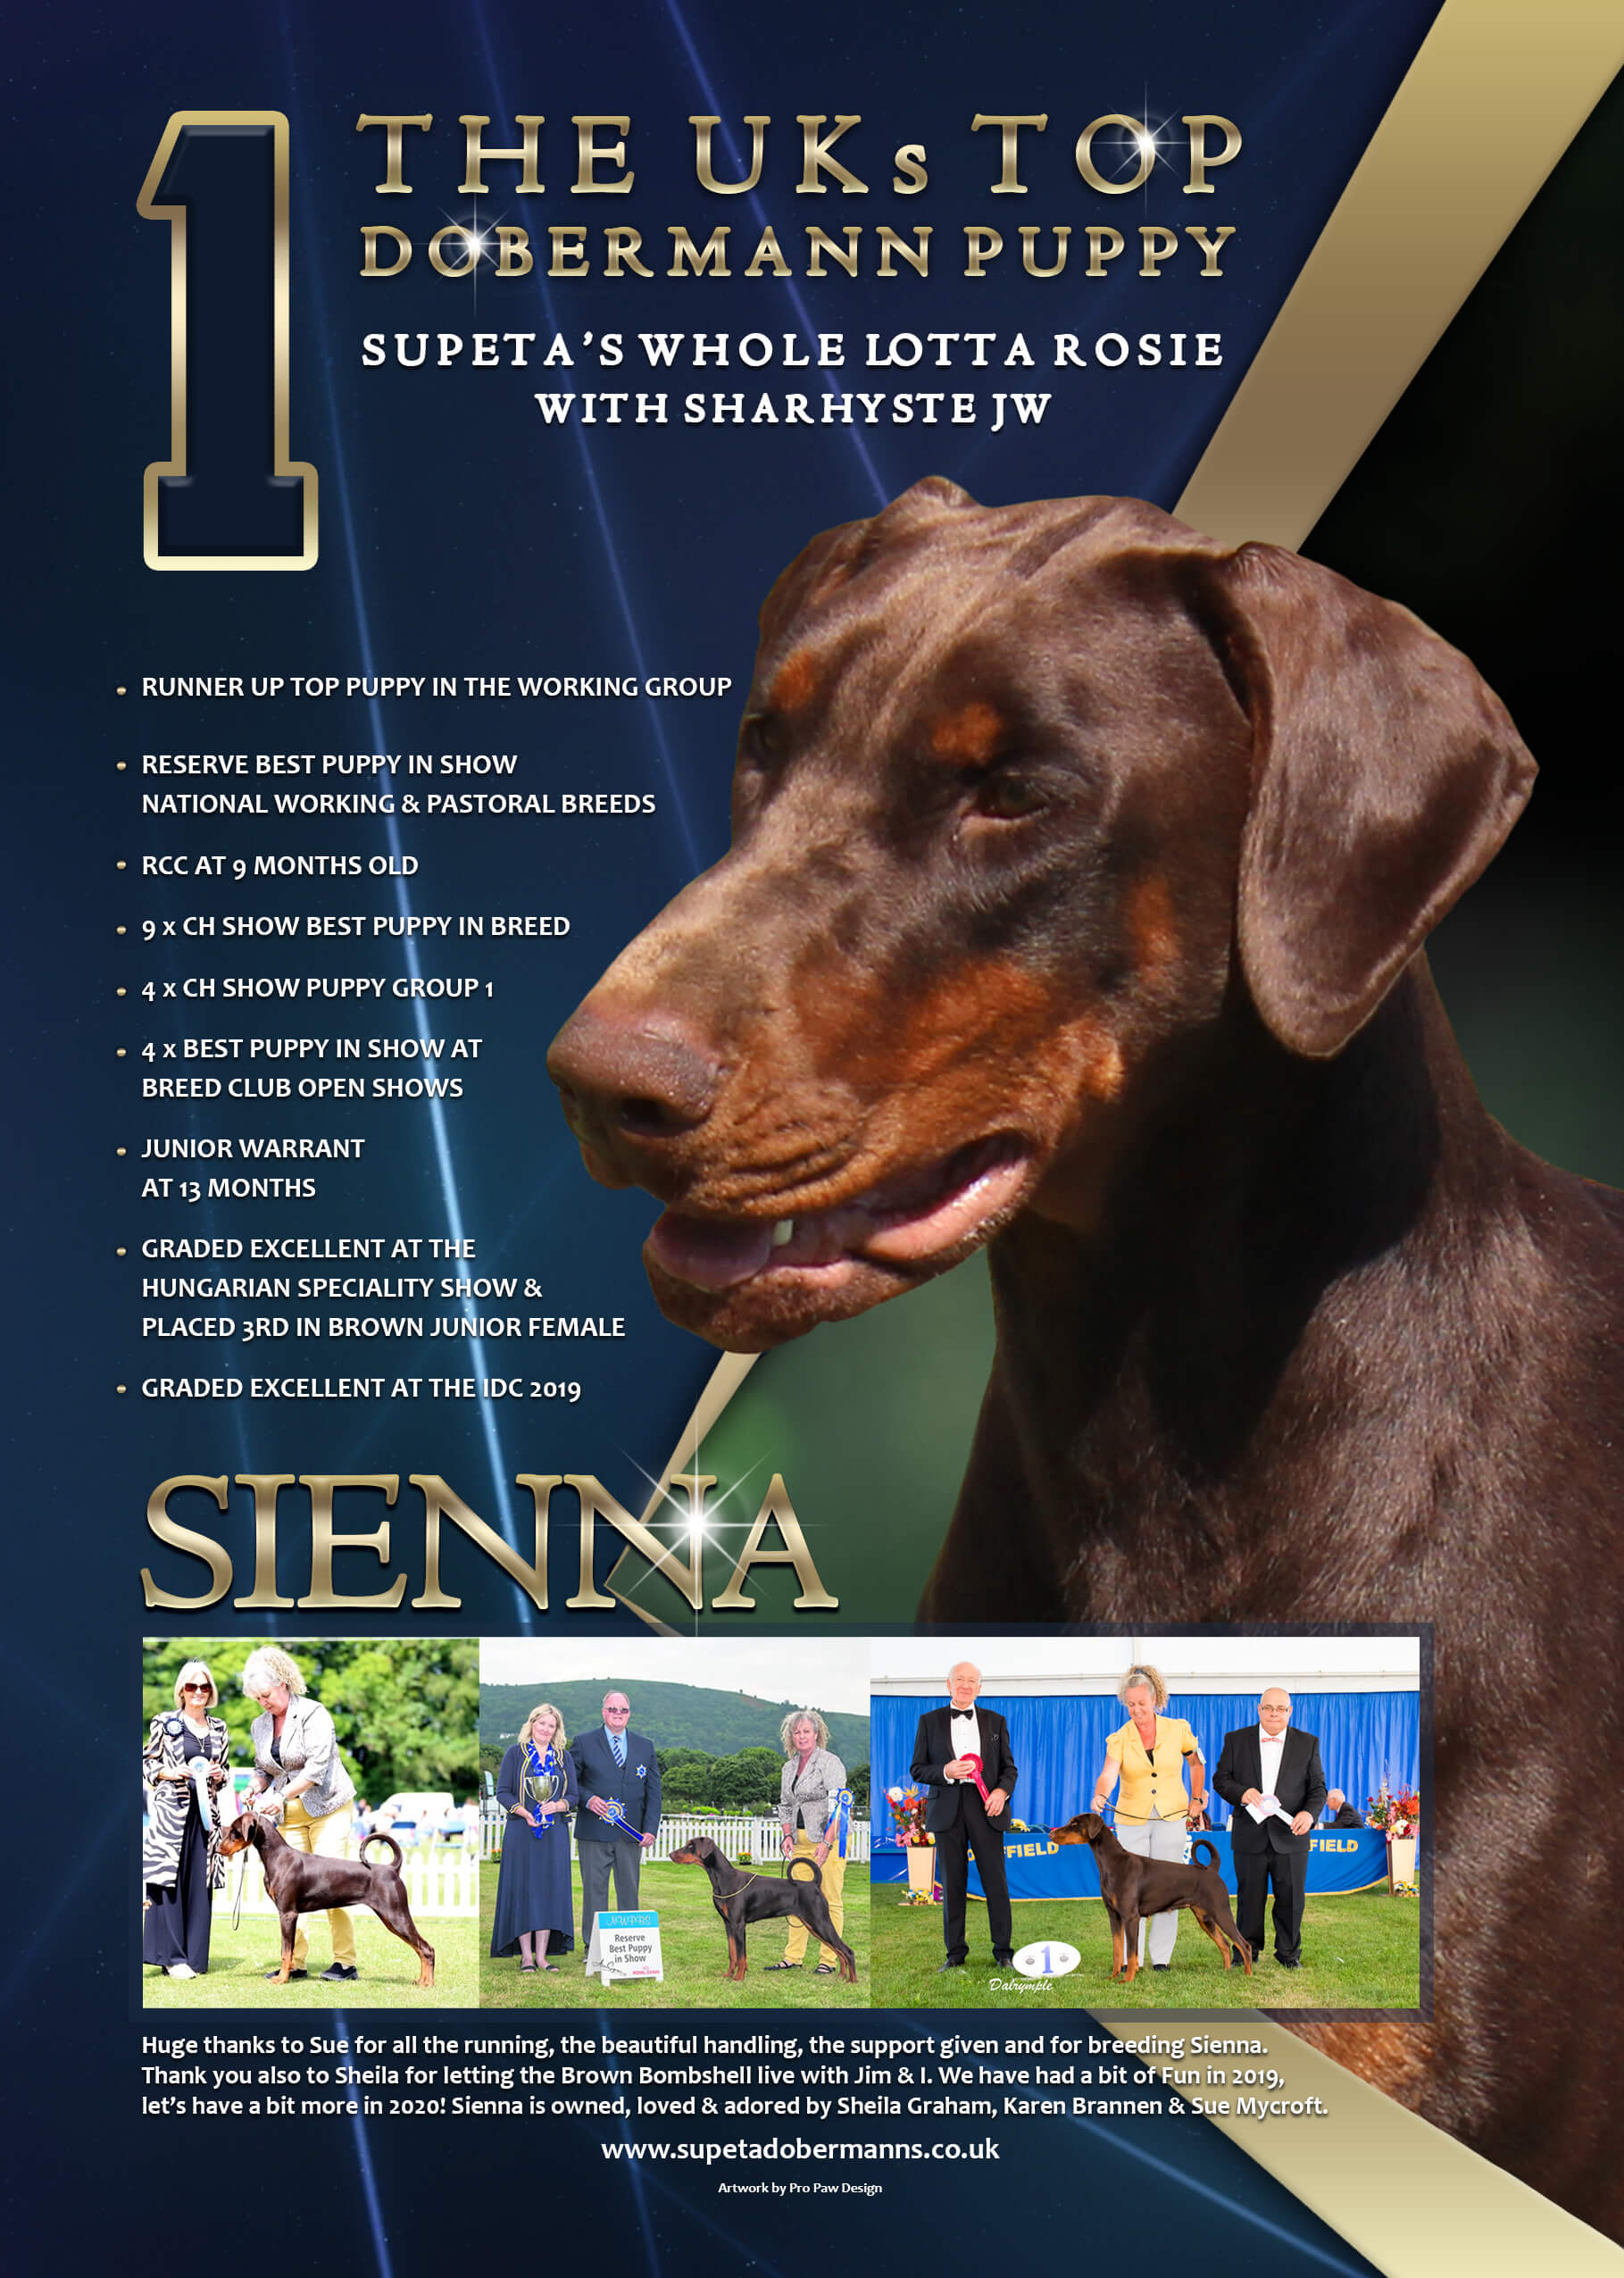 Supeta's Dobermanns